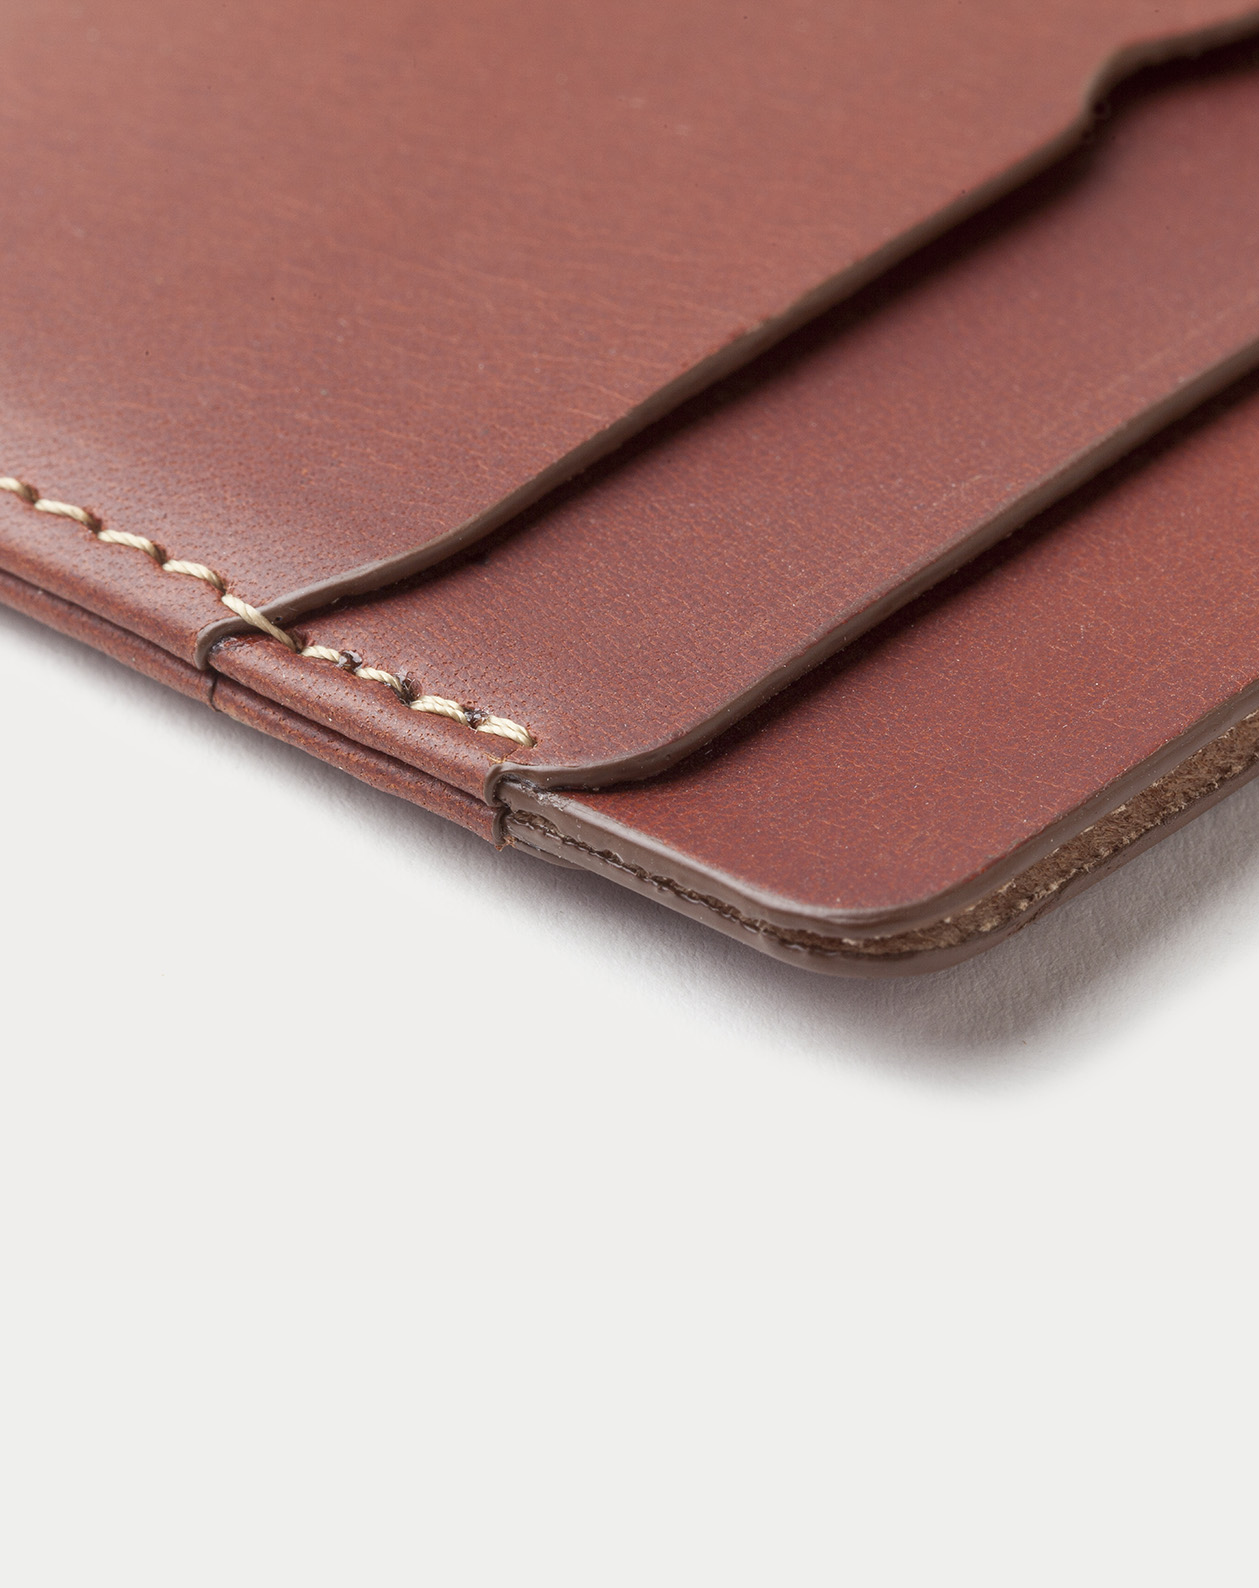 Leather Card Holder Panama + Roasted with five pockets. Tarjetero de piel Panama + Roasted con cinco compartimentos. v4